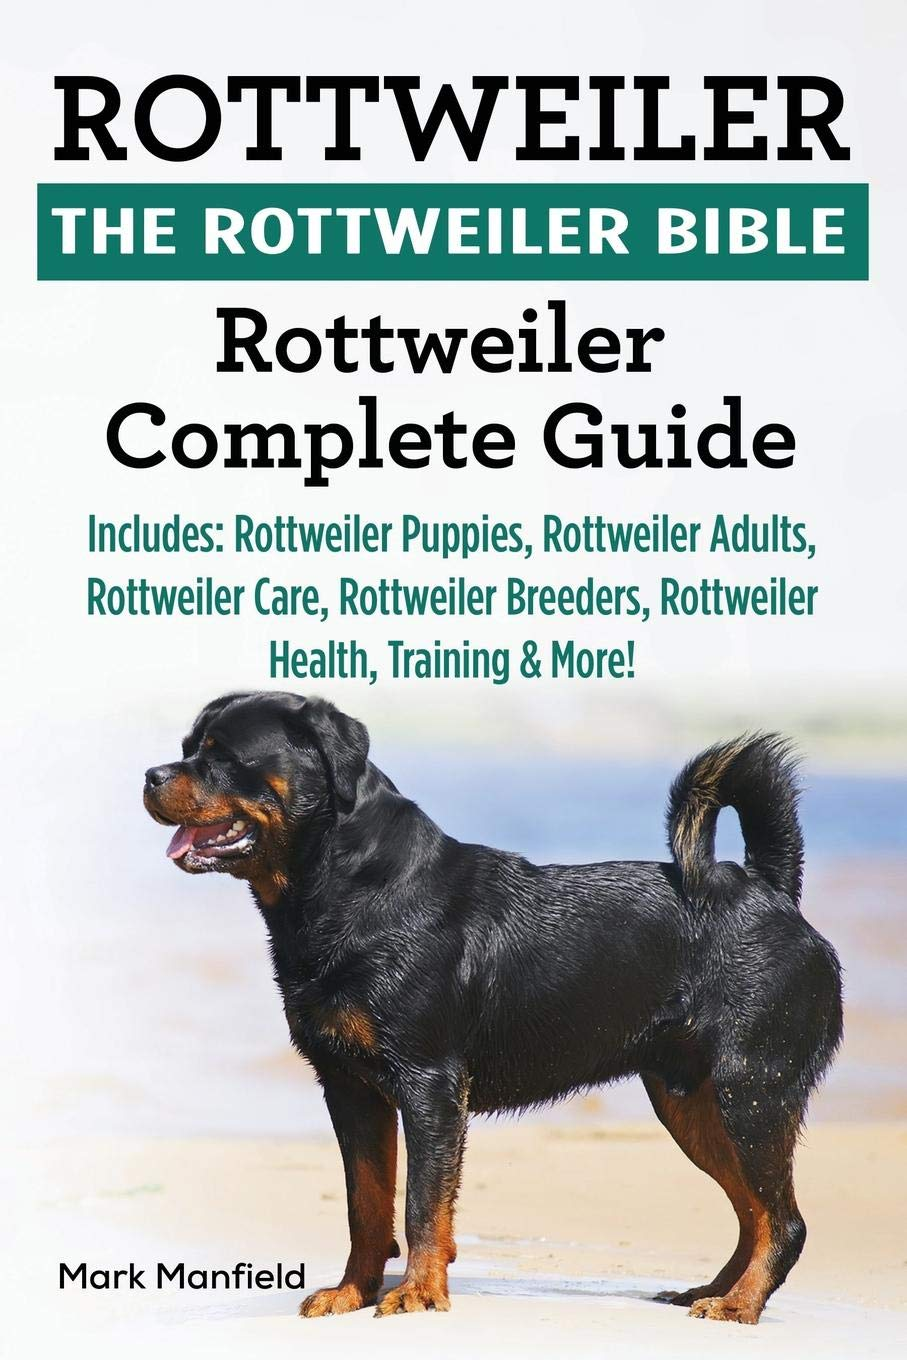 Rottweiler The Rottweiler Bible Rottweiler Complete Guide Includes